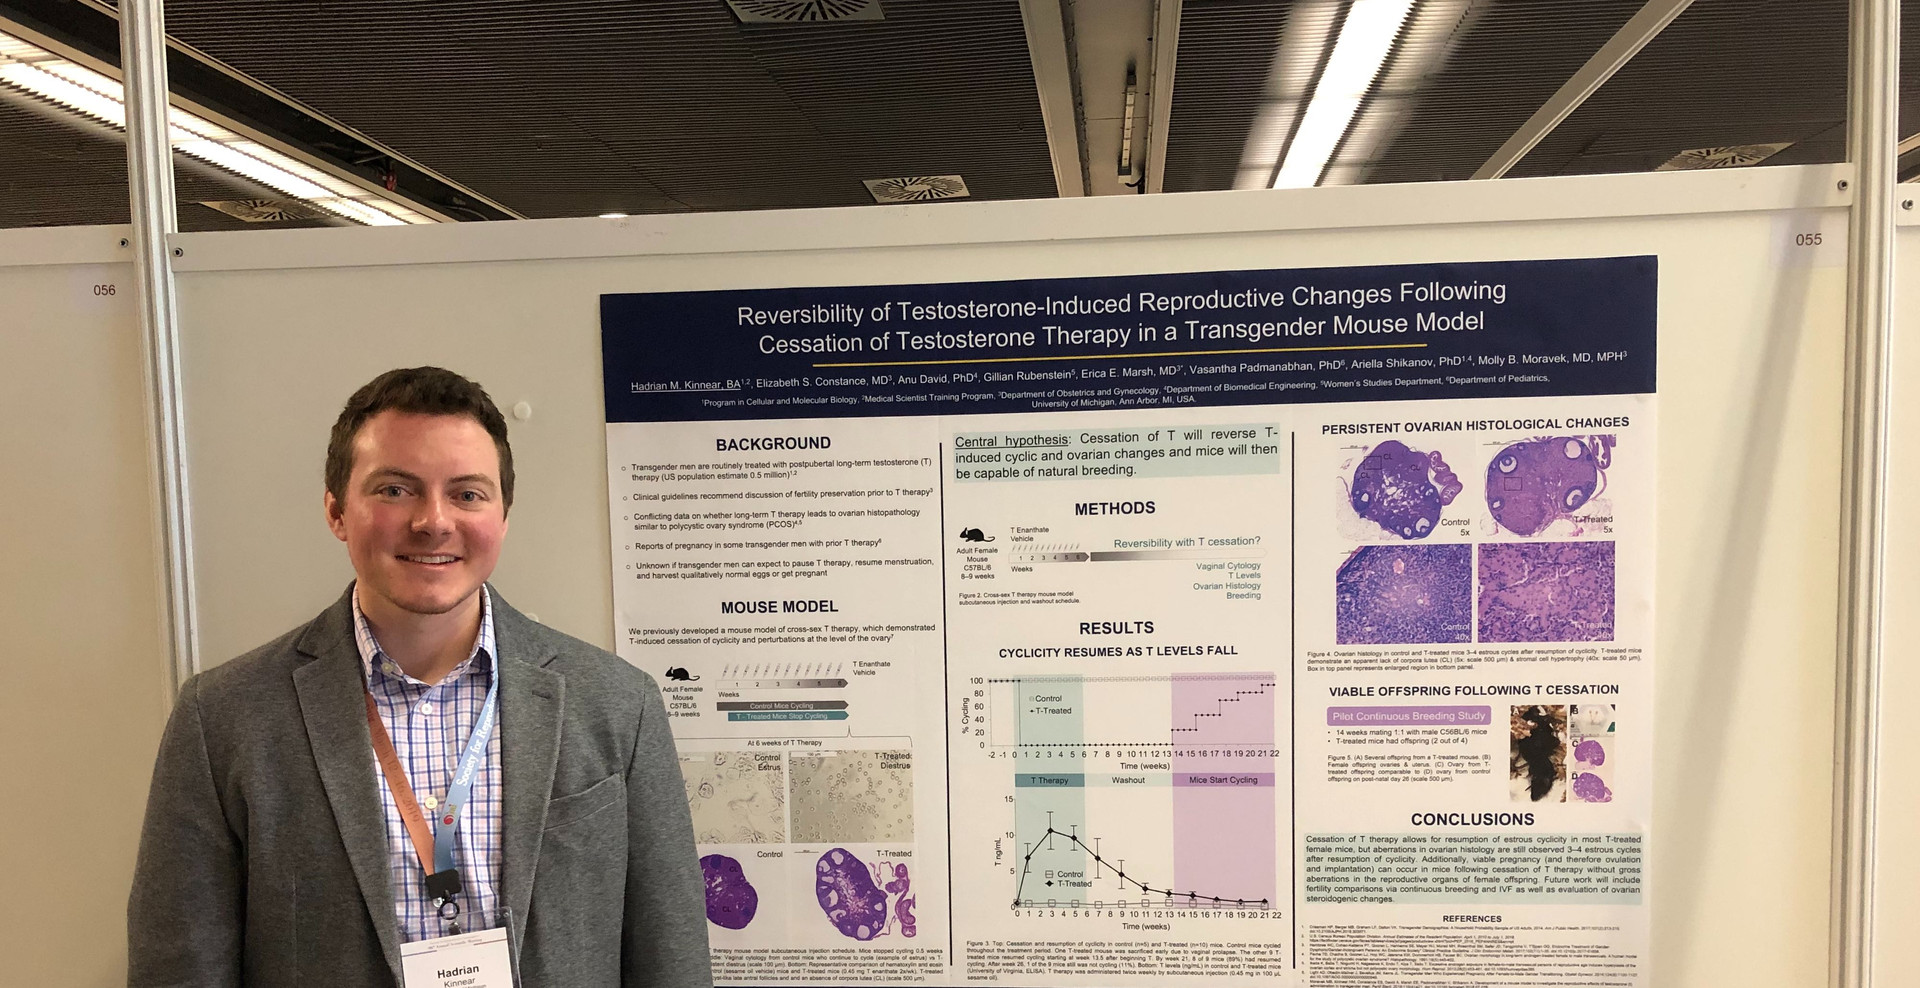 Congratulations to Hadrian Kinnear and his co-authors, for receiving the SRI Poster Award at the SRI conference in Paris!